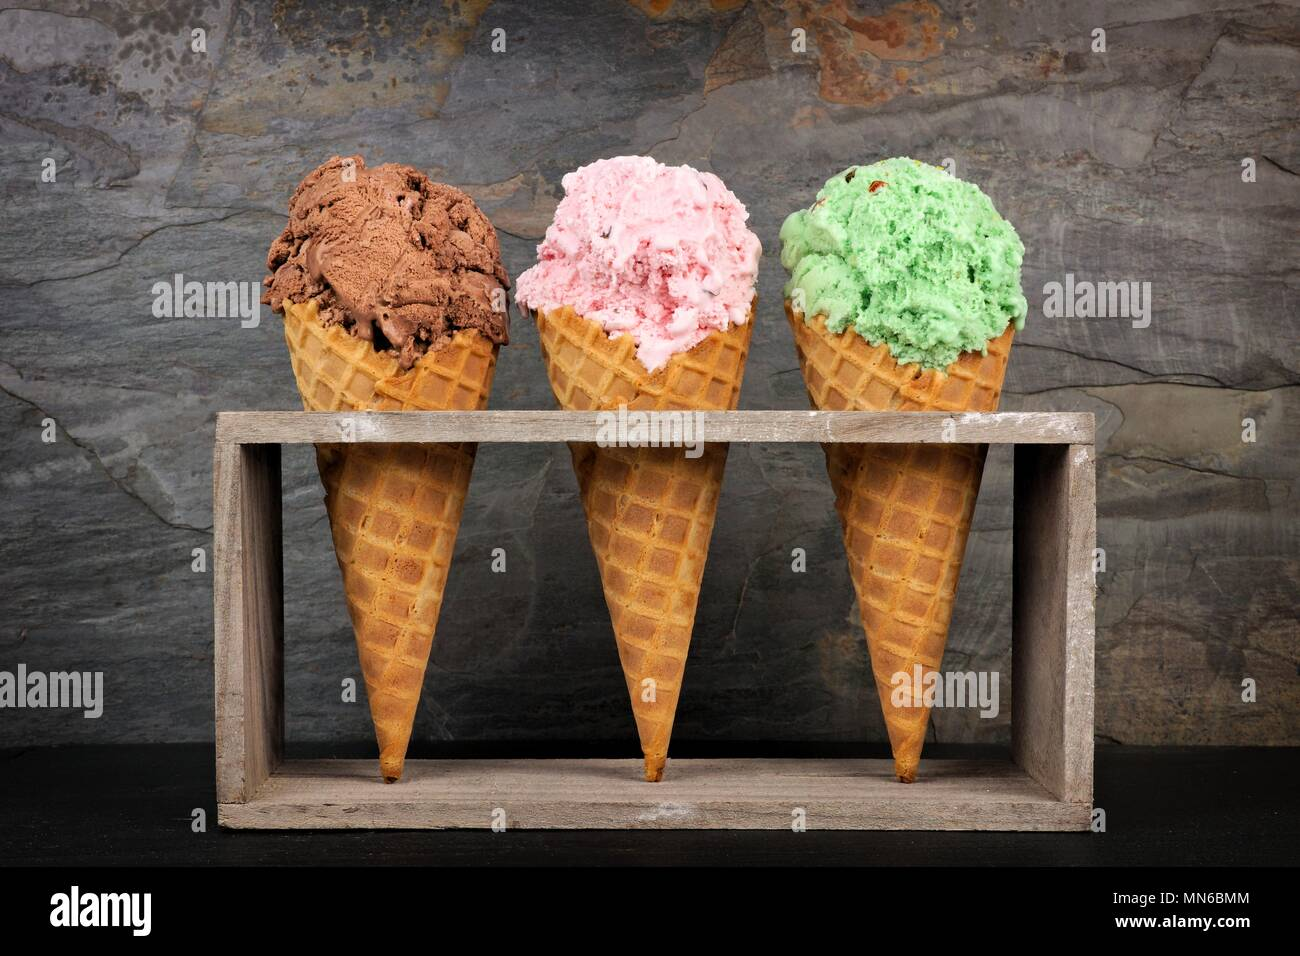 Chocolate, cherry and pistachio ice cream in waffle cones in rustic wood holder over a slate background - Stock Image